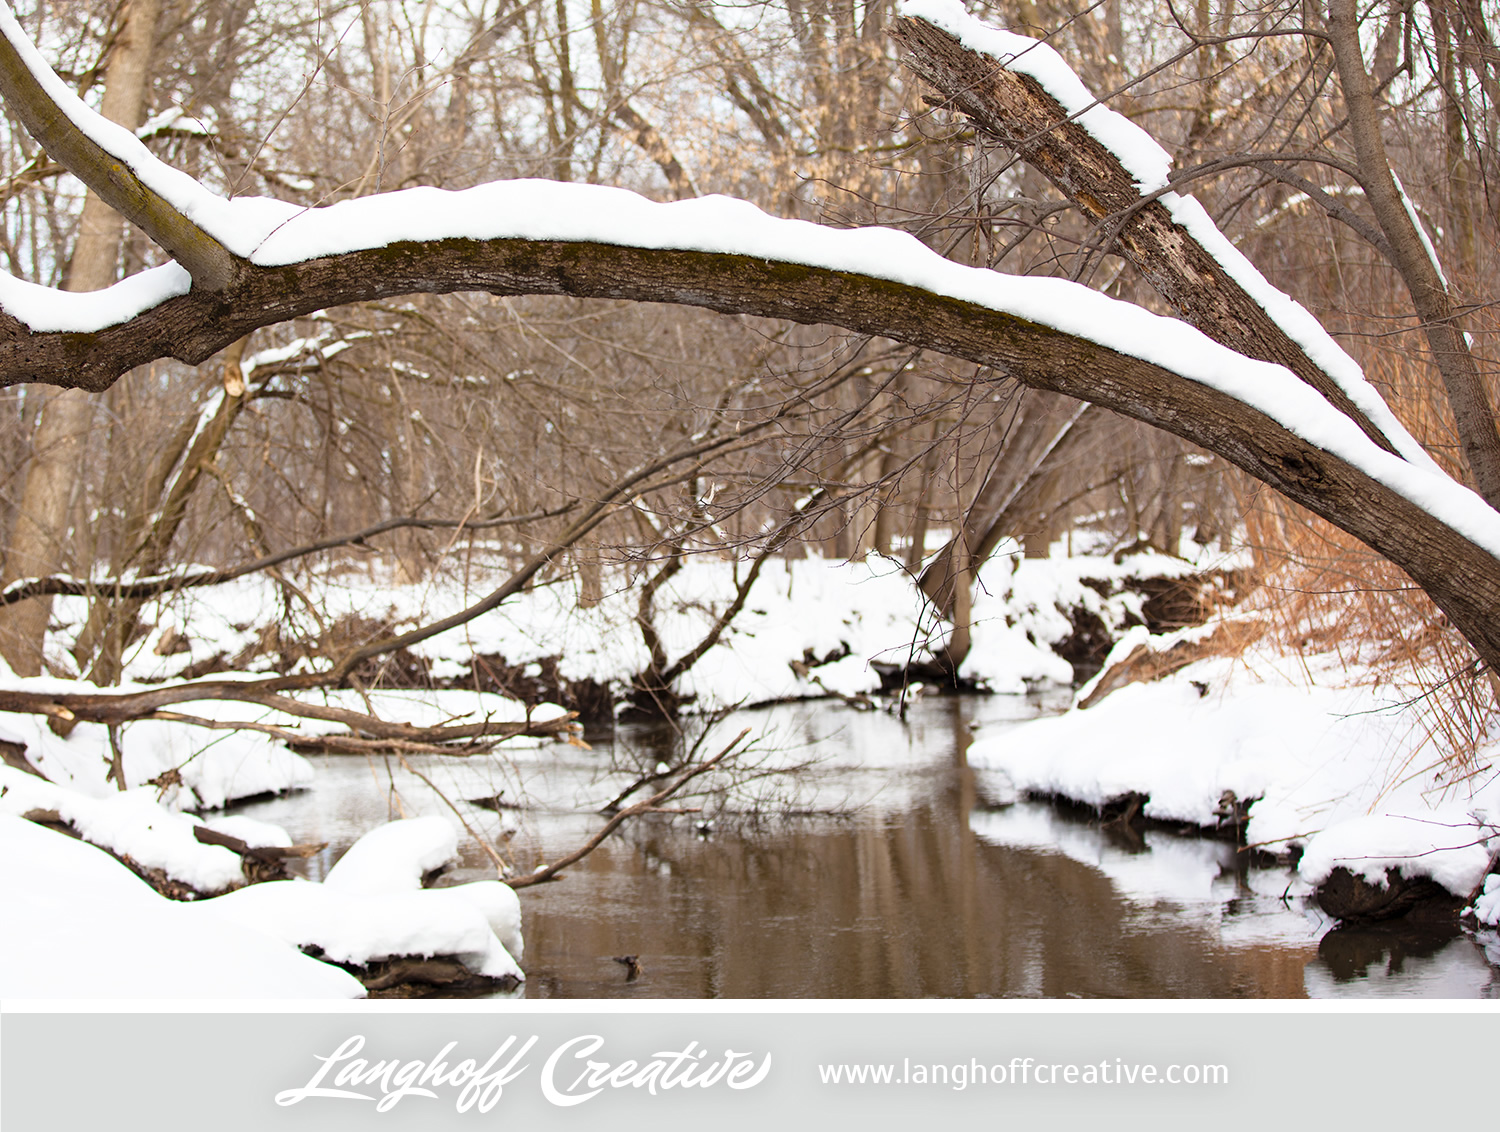 LanghoffCreative-20130308-winter13-image.jpg